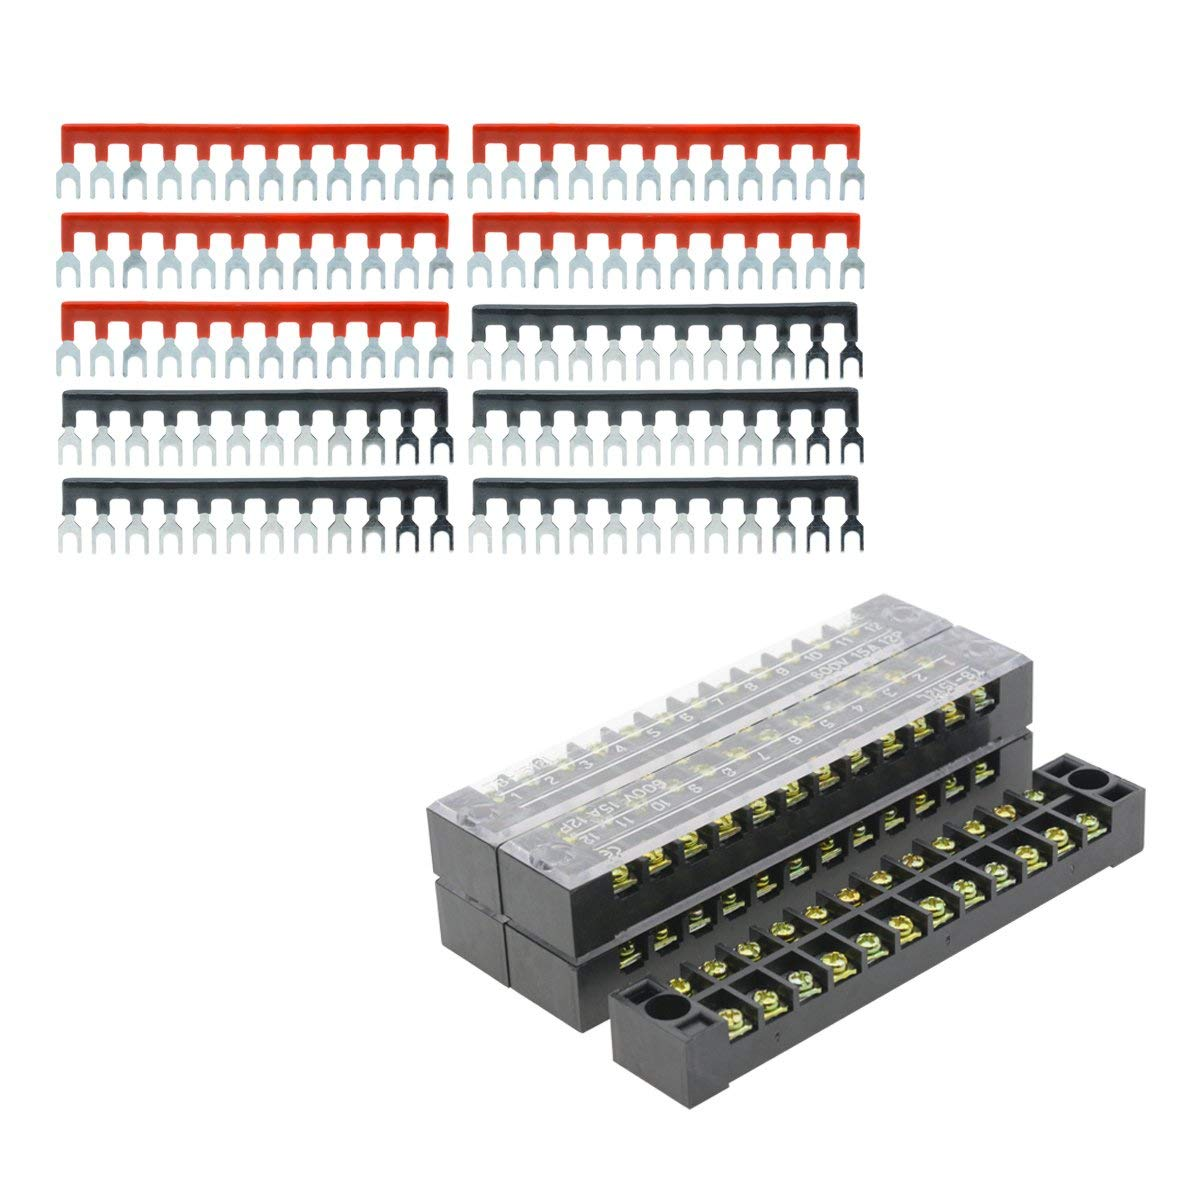 Instrumentation JJDD Double Row 3 Positions Screw Terminal Strip 600V 45A Railway,2PCS Wire Barrier Block Terminal Strip TB-4503 with Plastic Cover Suitable for Industrial Lighting